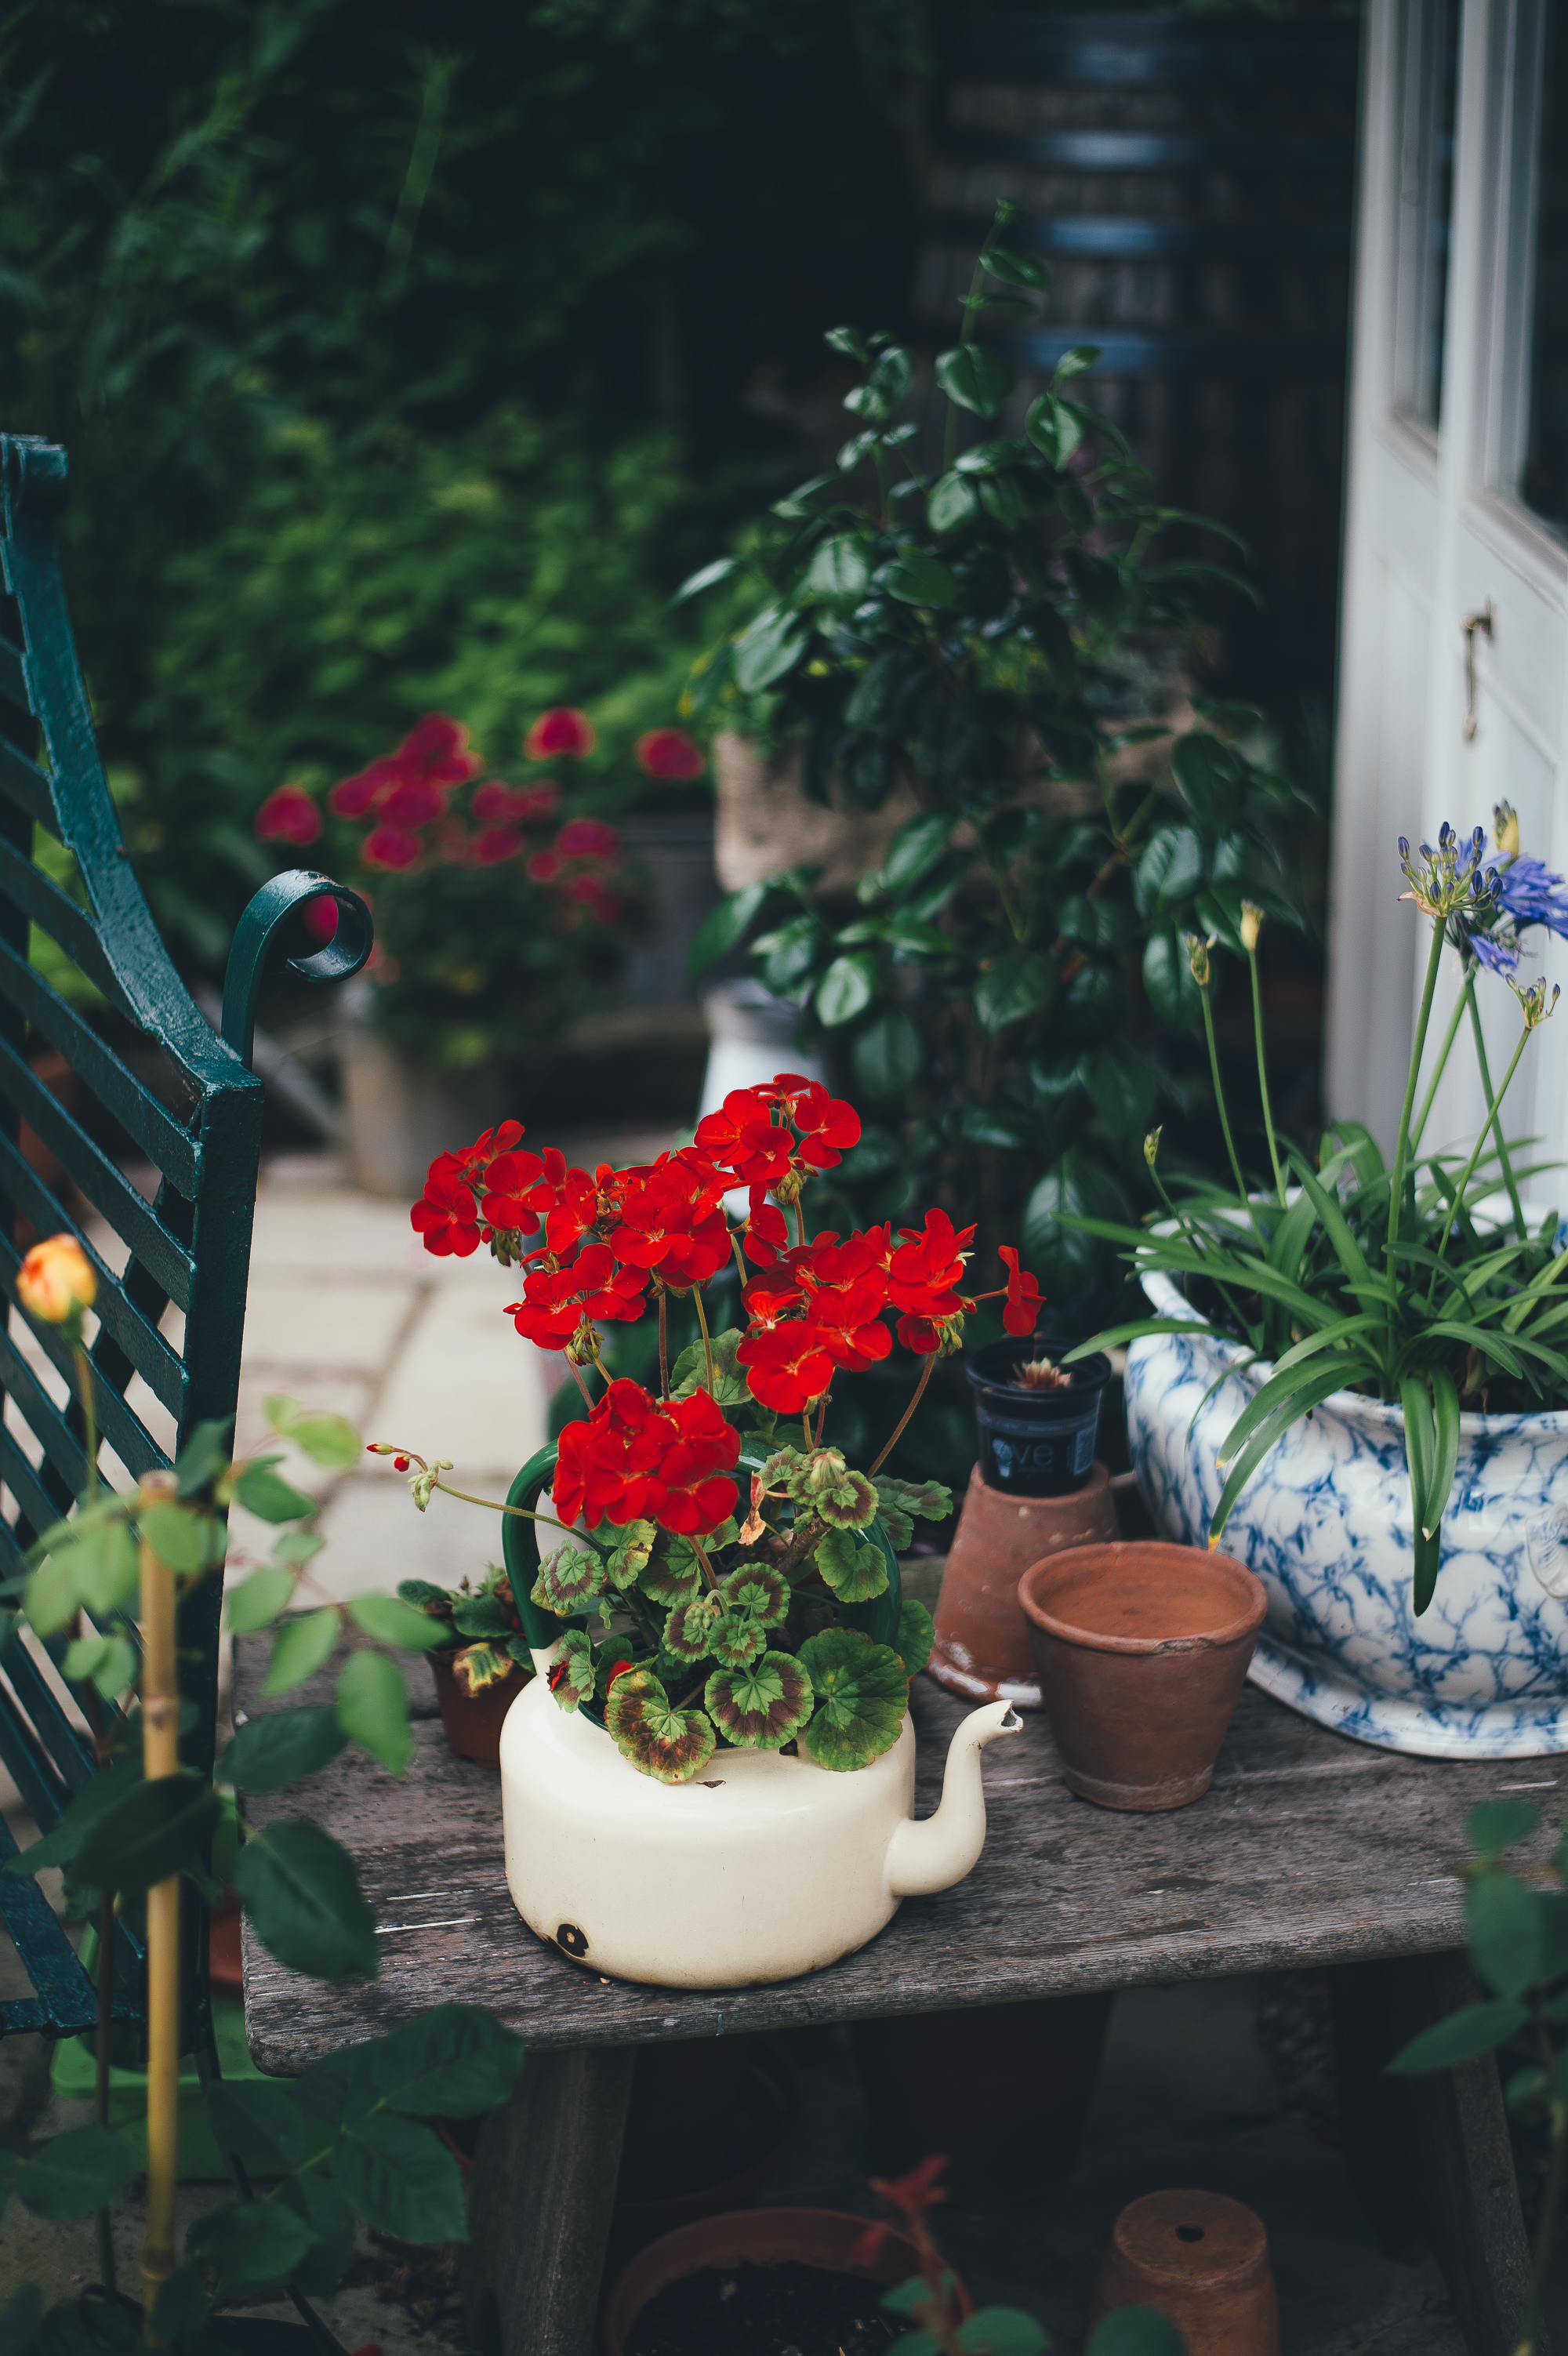 Autumn garden makeover. A cream teapot has been upcycled into a planted for a red flower plant